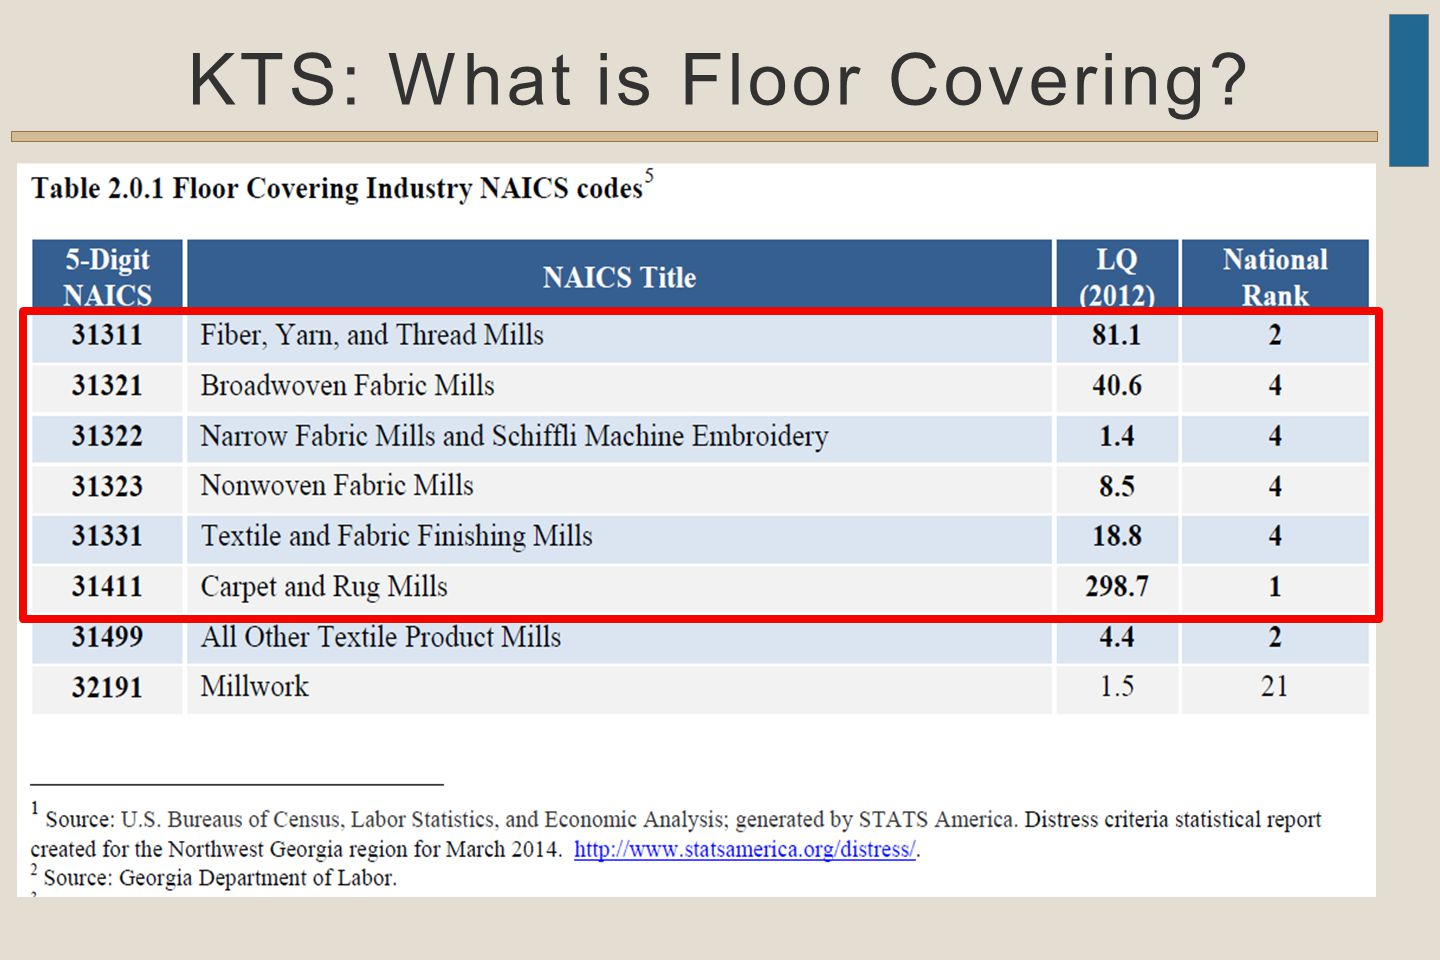 KTS: What is Floor Covering?